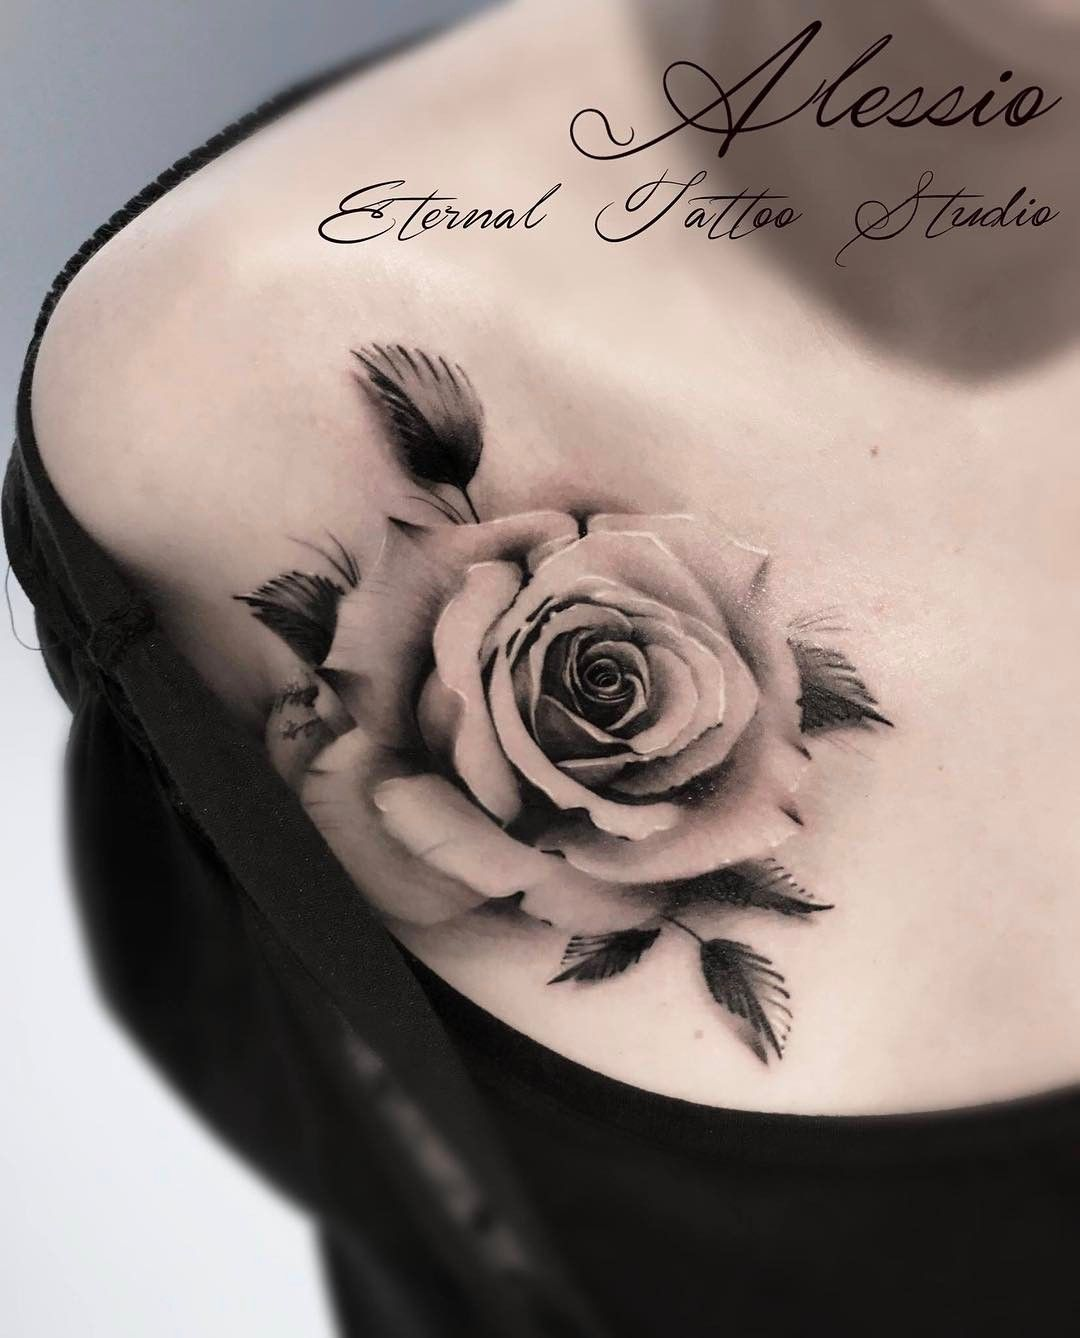 shading rose tattoos on women in 2018 pinterest tattoo ideen tattoo vorlagen and. Black Bedroom Furniture Sets. Home Design Ideas